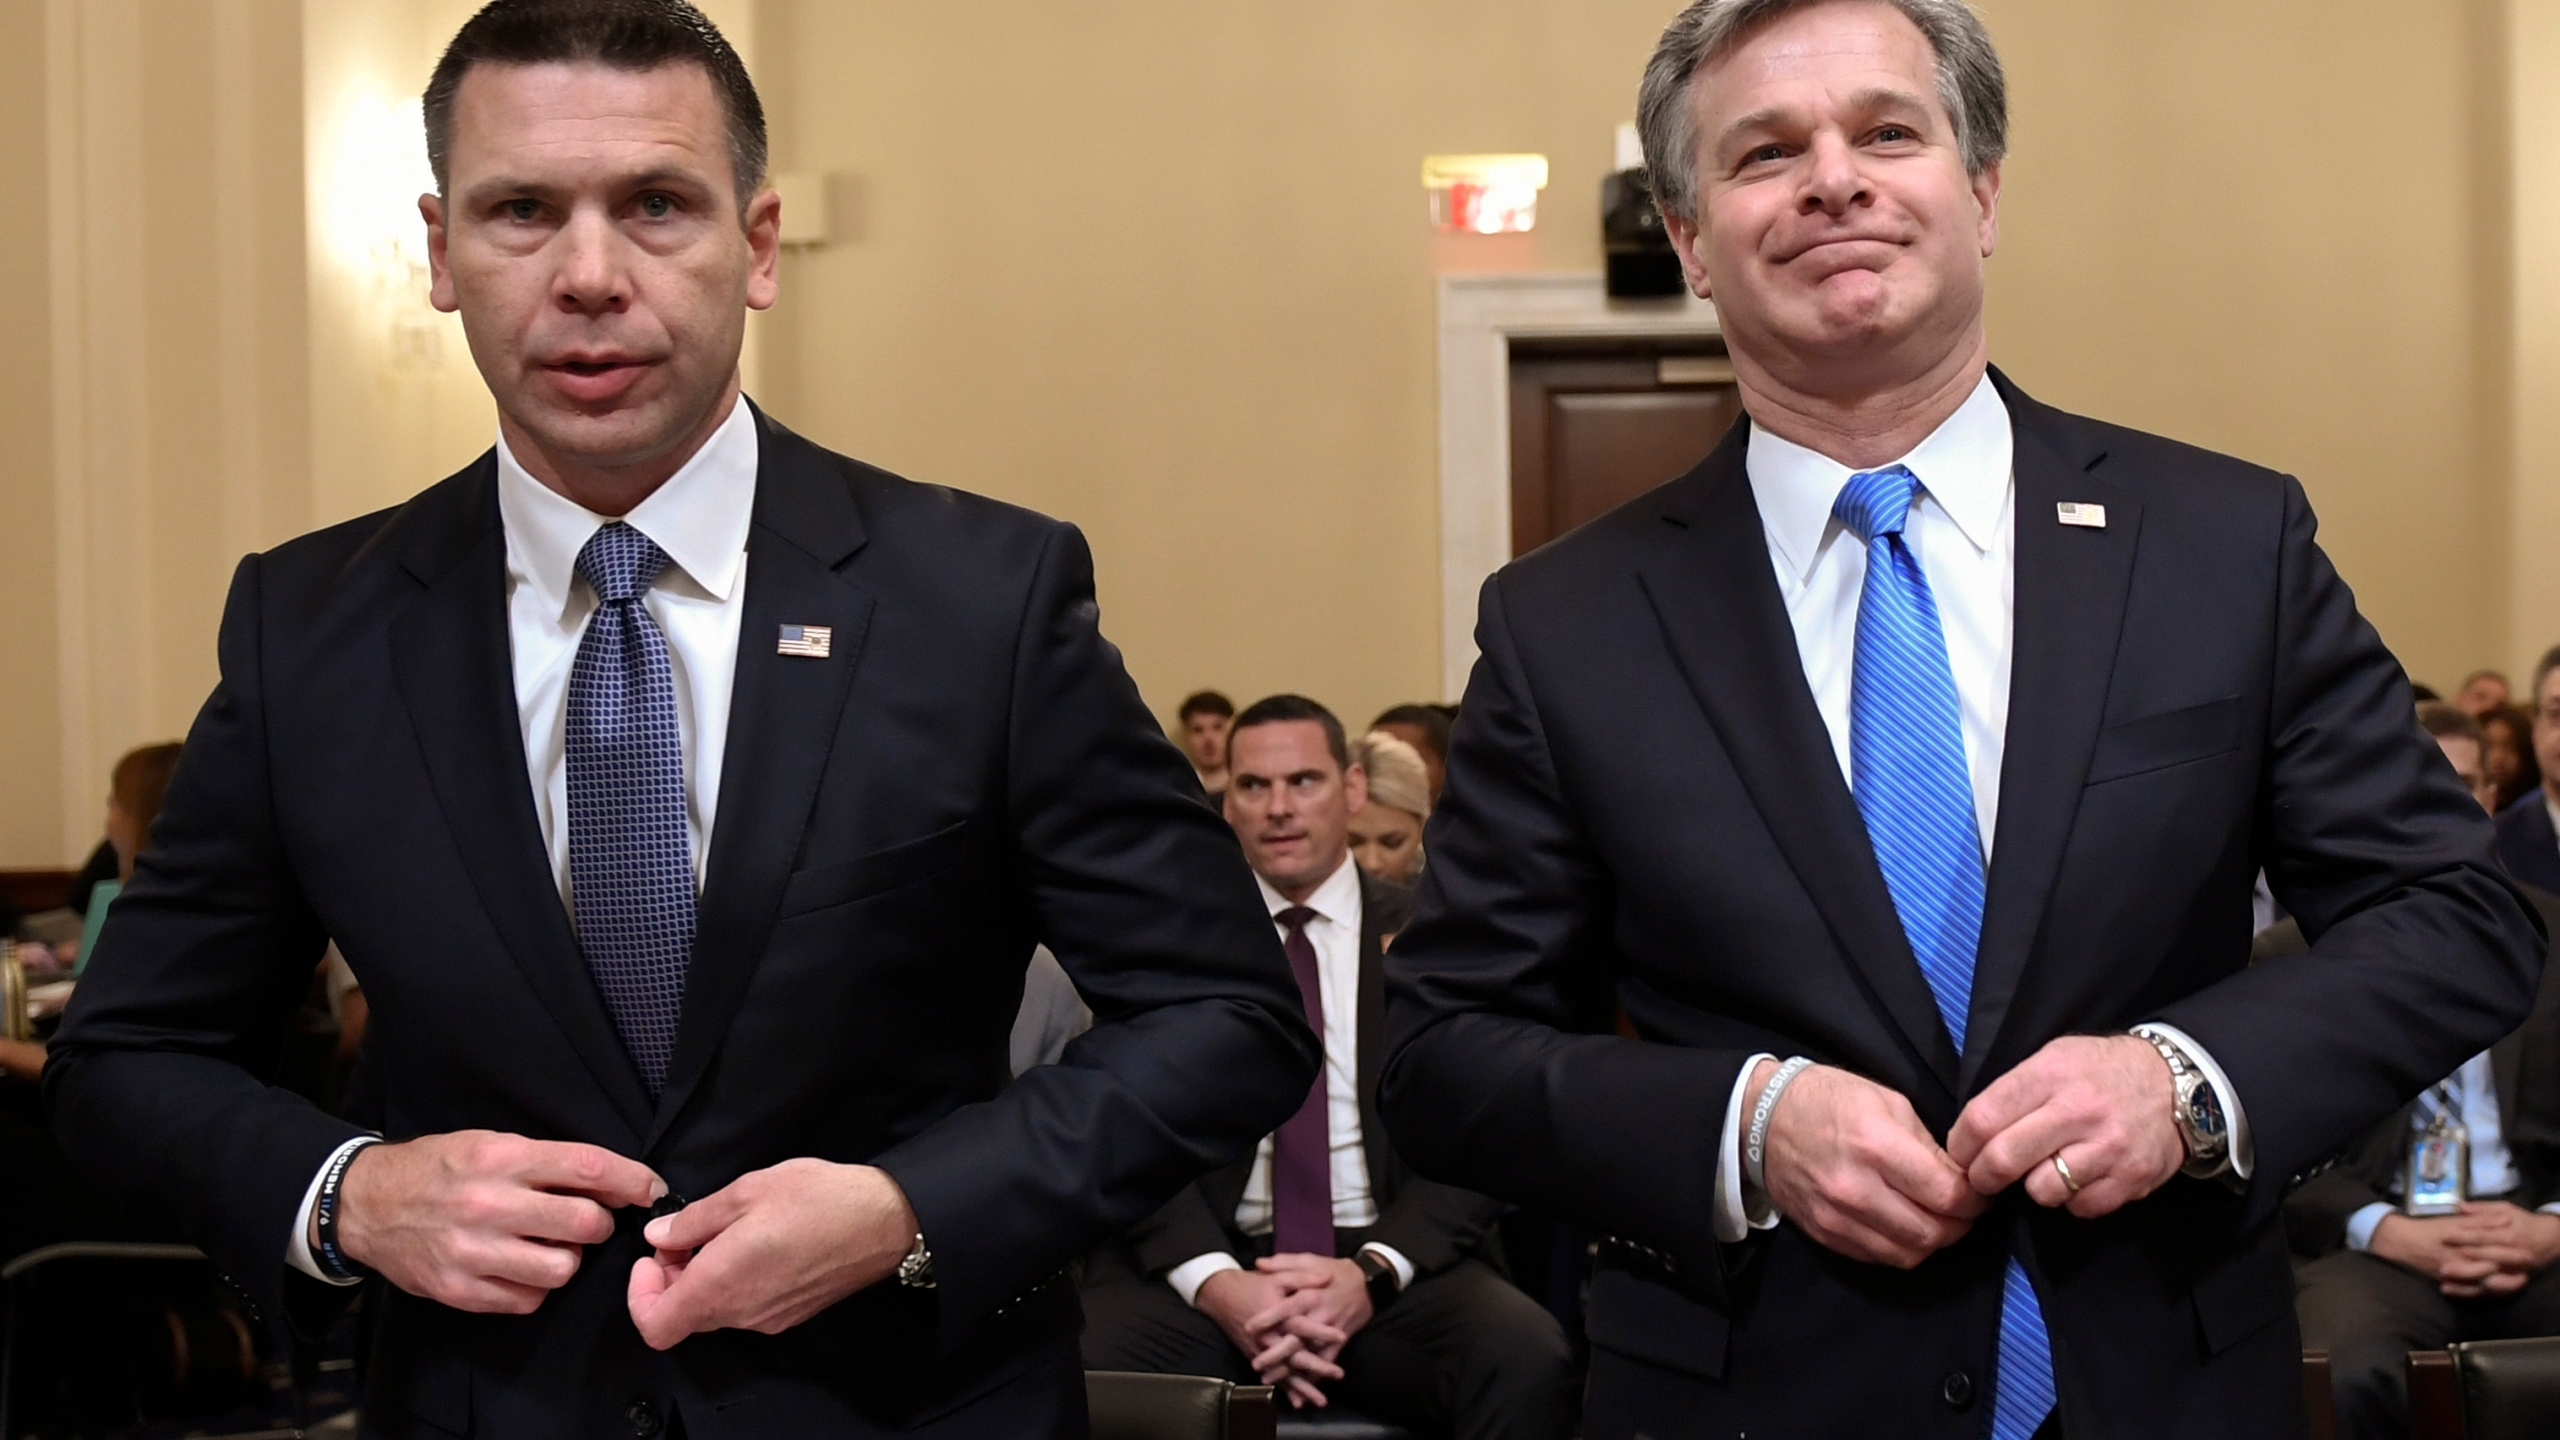 Christopher Wray, Kevin McAleenan